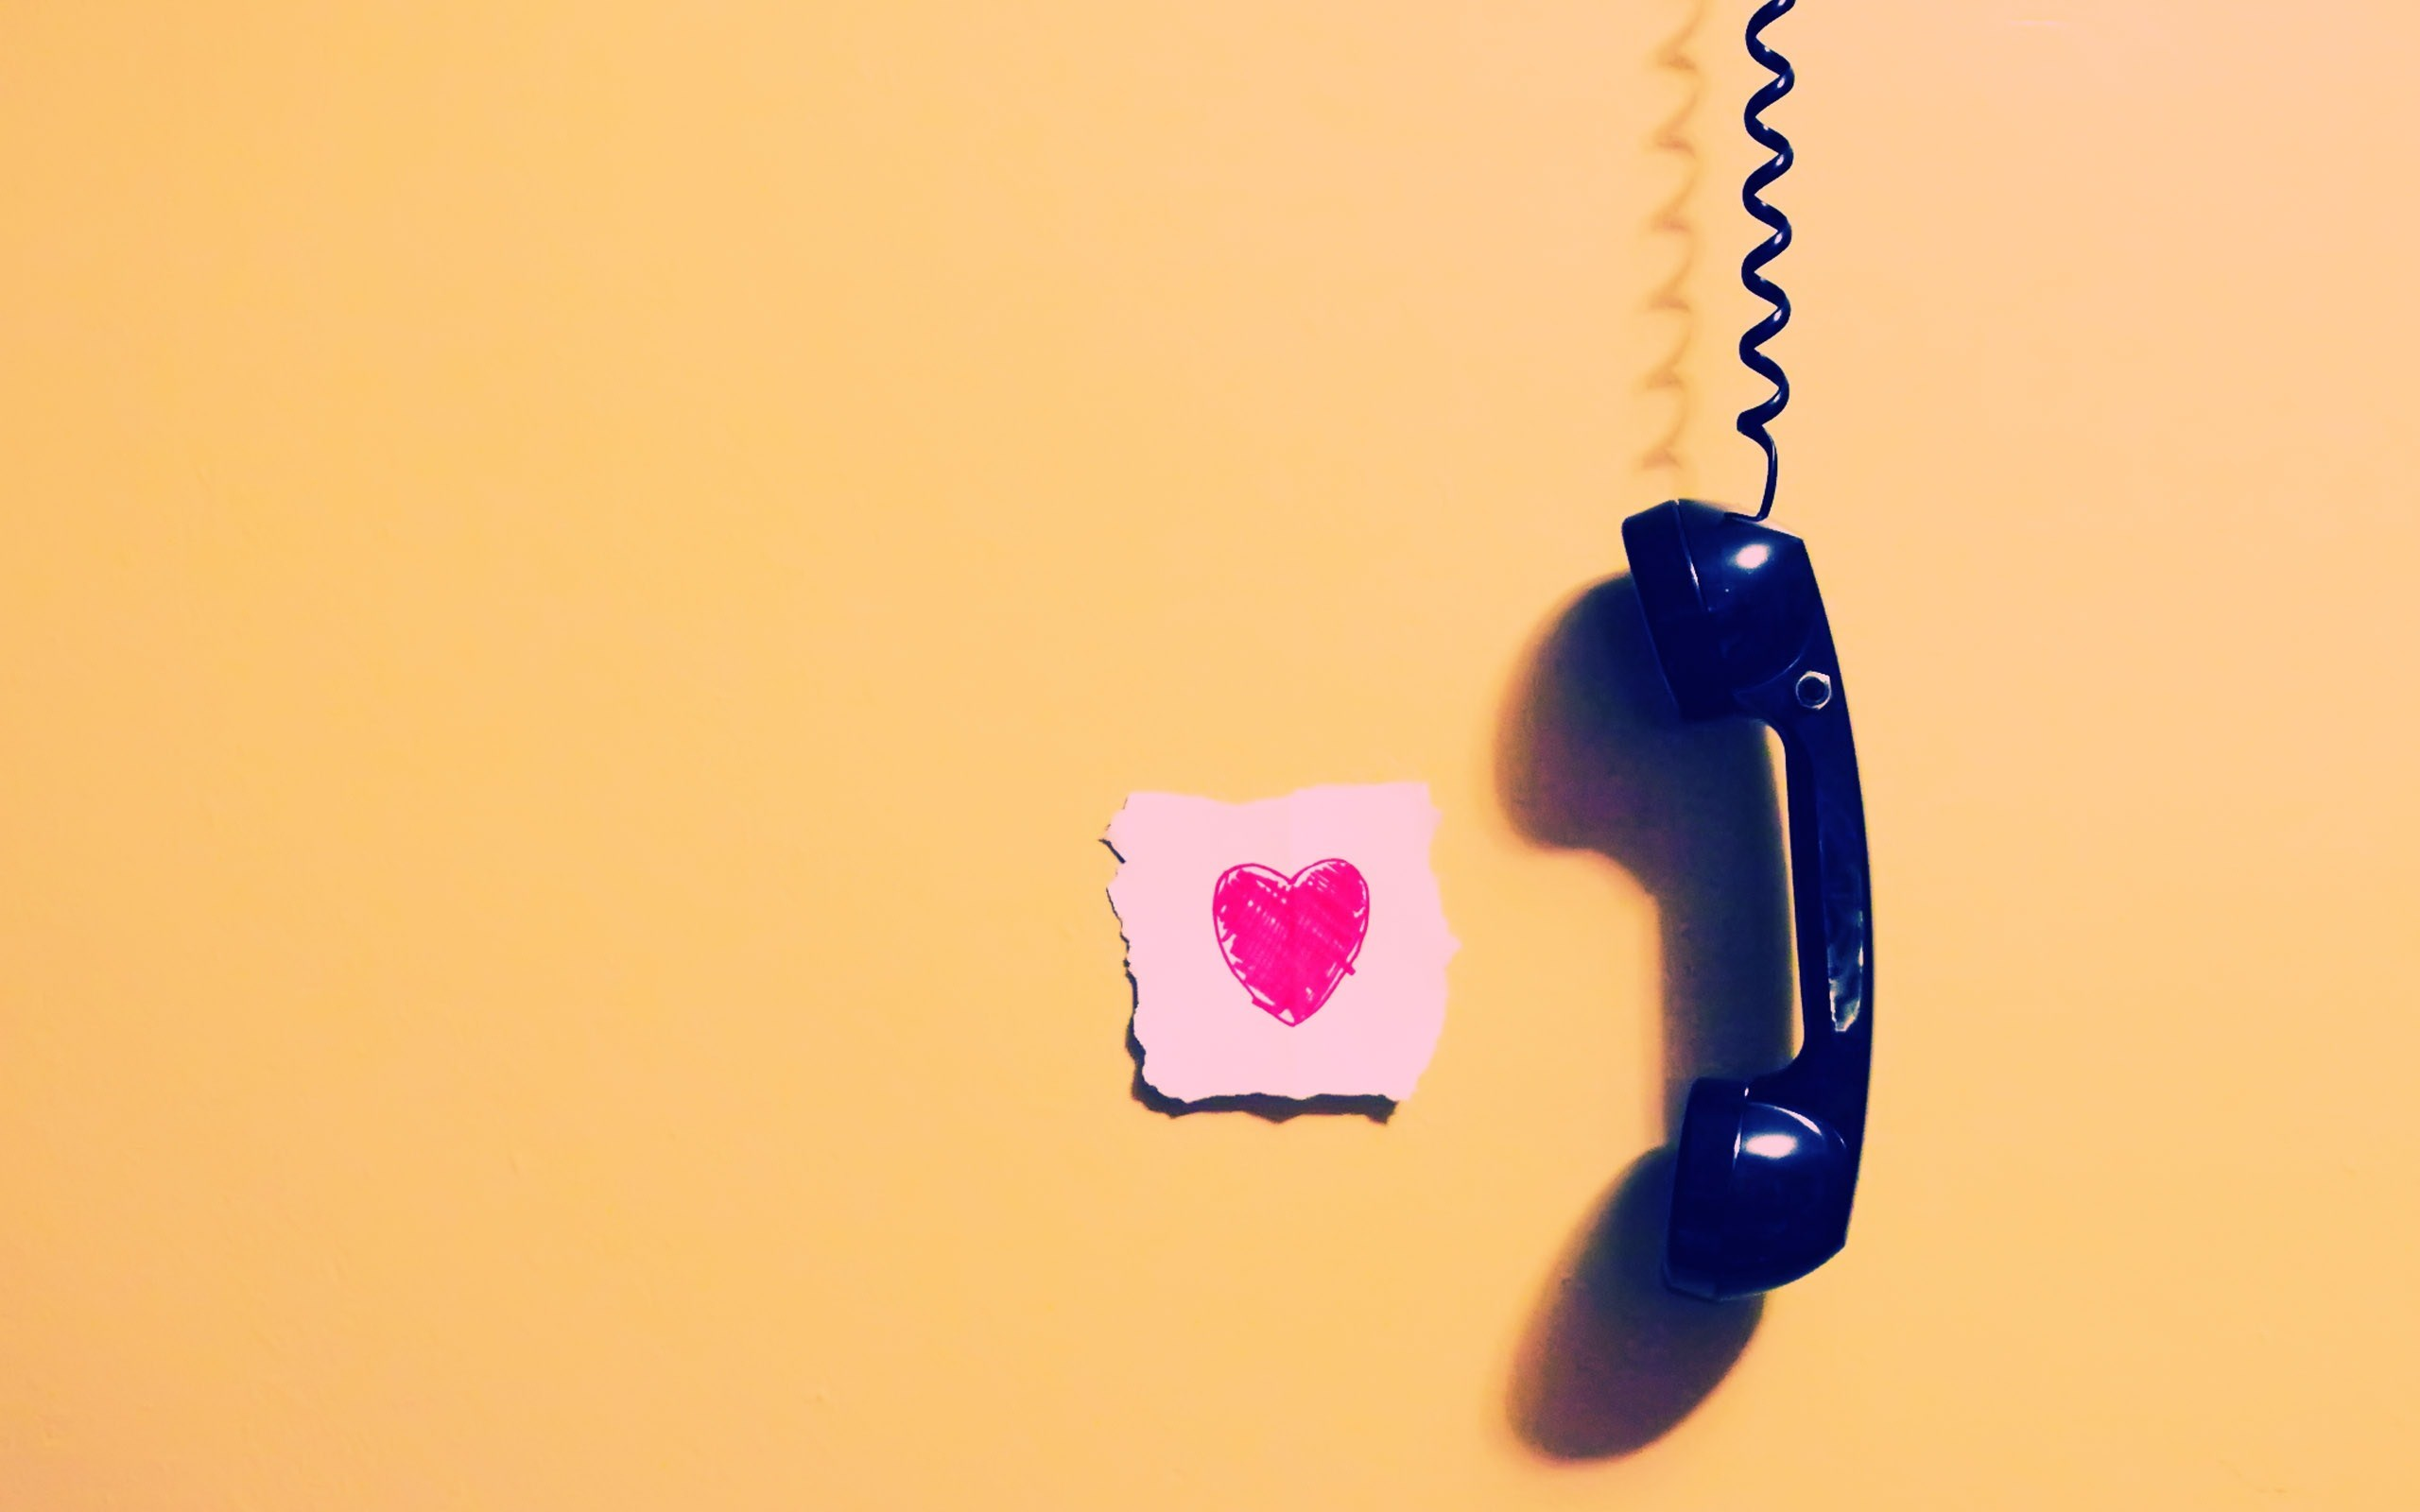 Love You Wallpaper For Girlfriend : calling My Girlfriend Pink Heart Love wallpaper ...